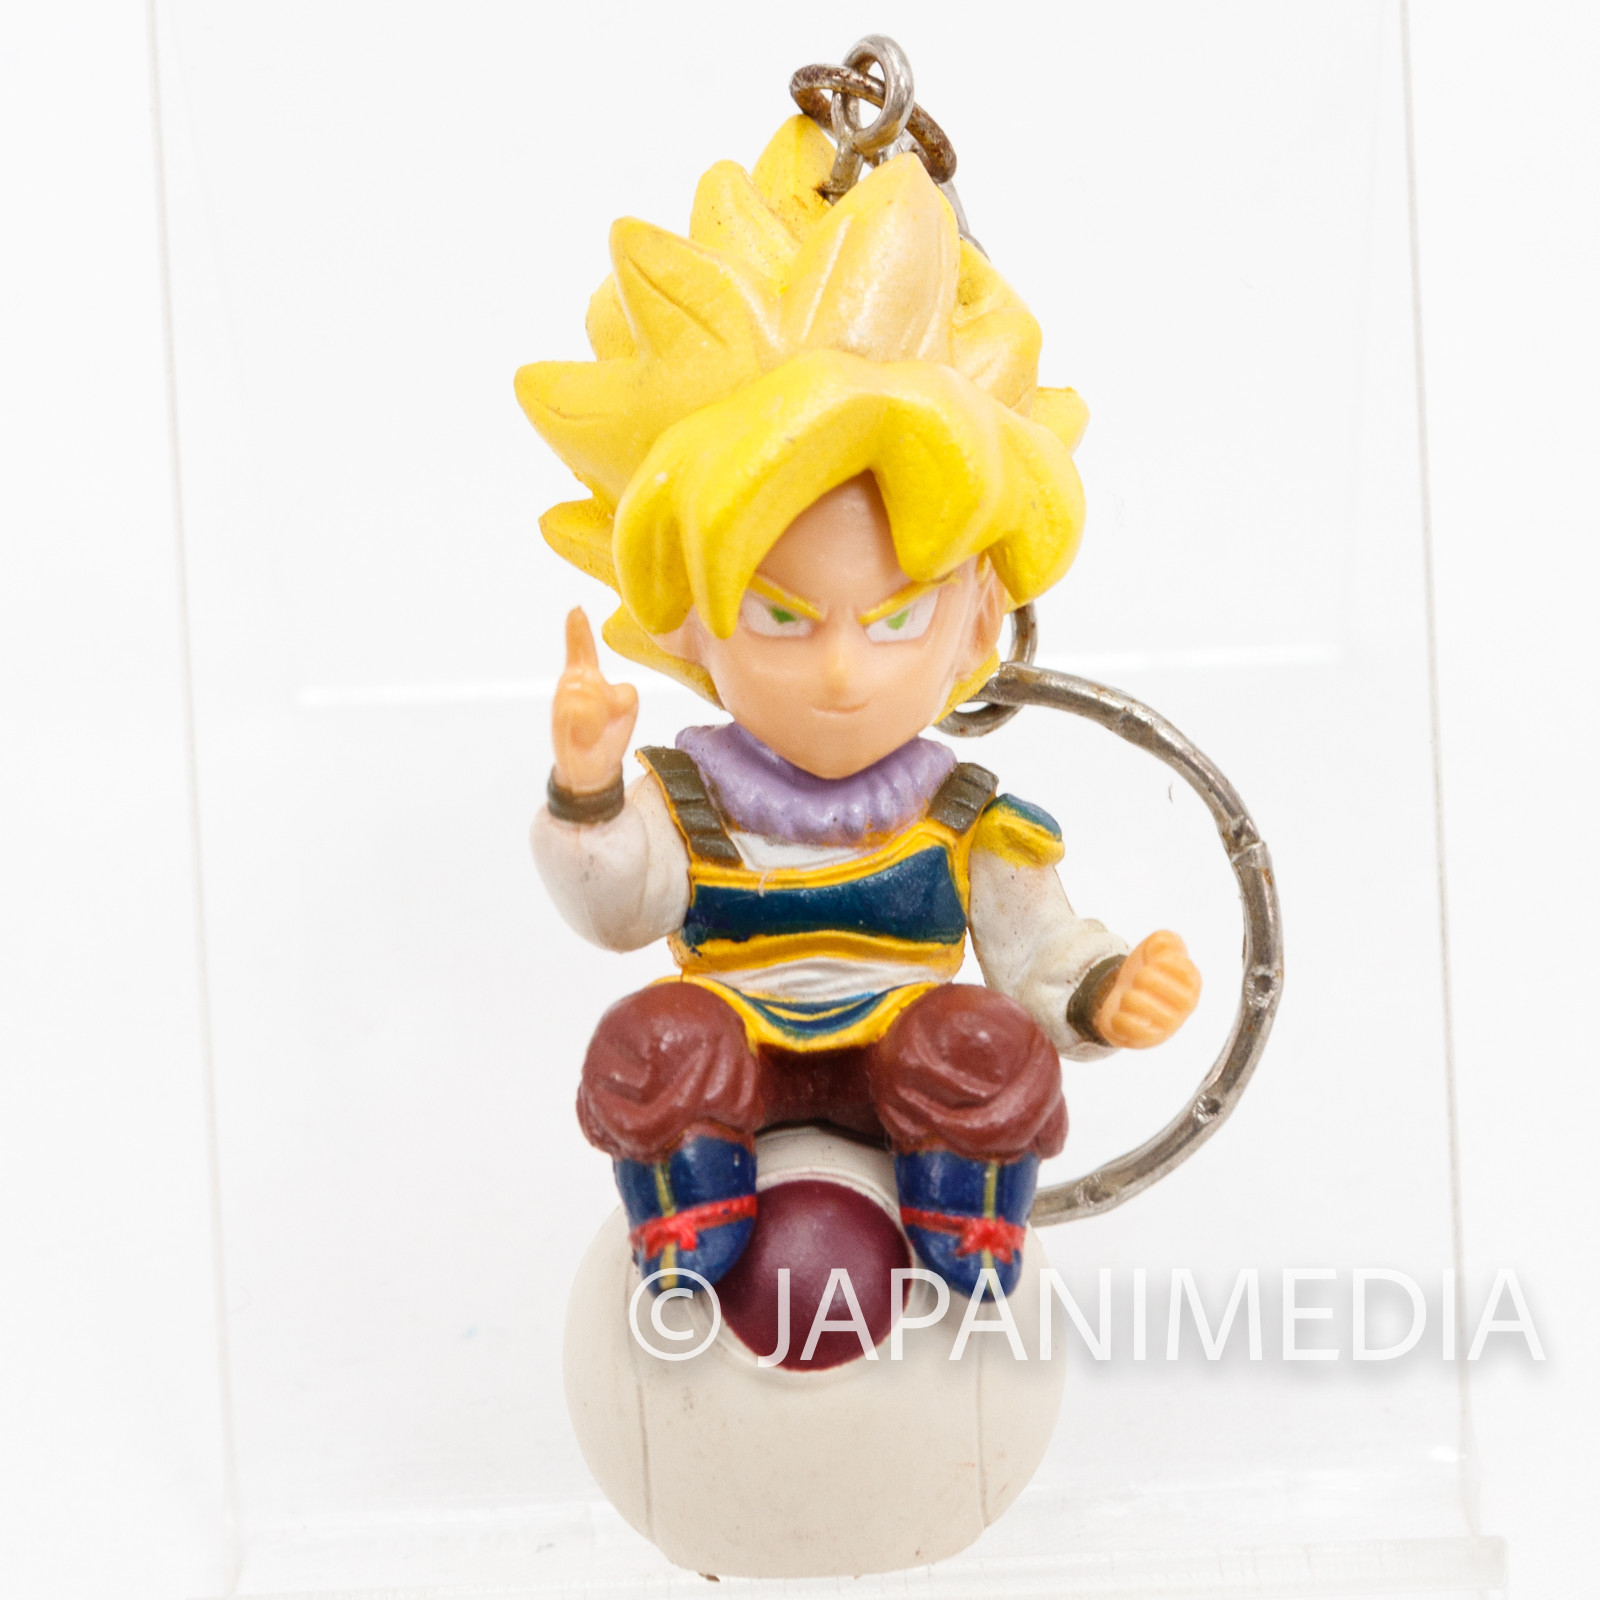 Dragon Ball Z Son Gokou Chara Petit Figure Key Chain JAPAN ANIME MANGA 3